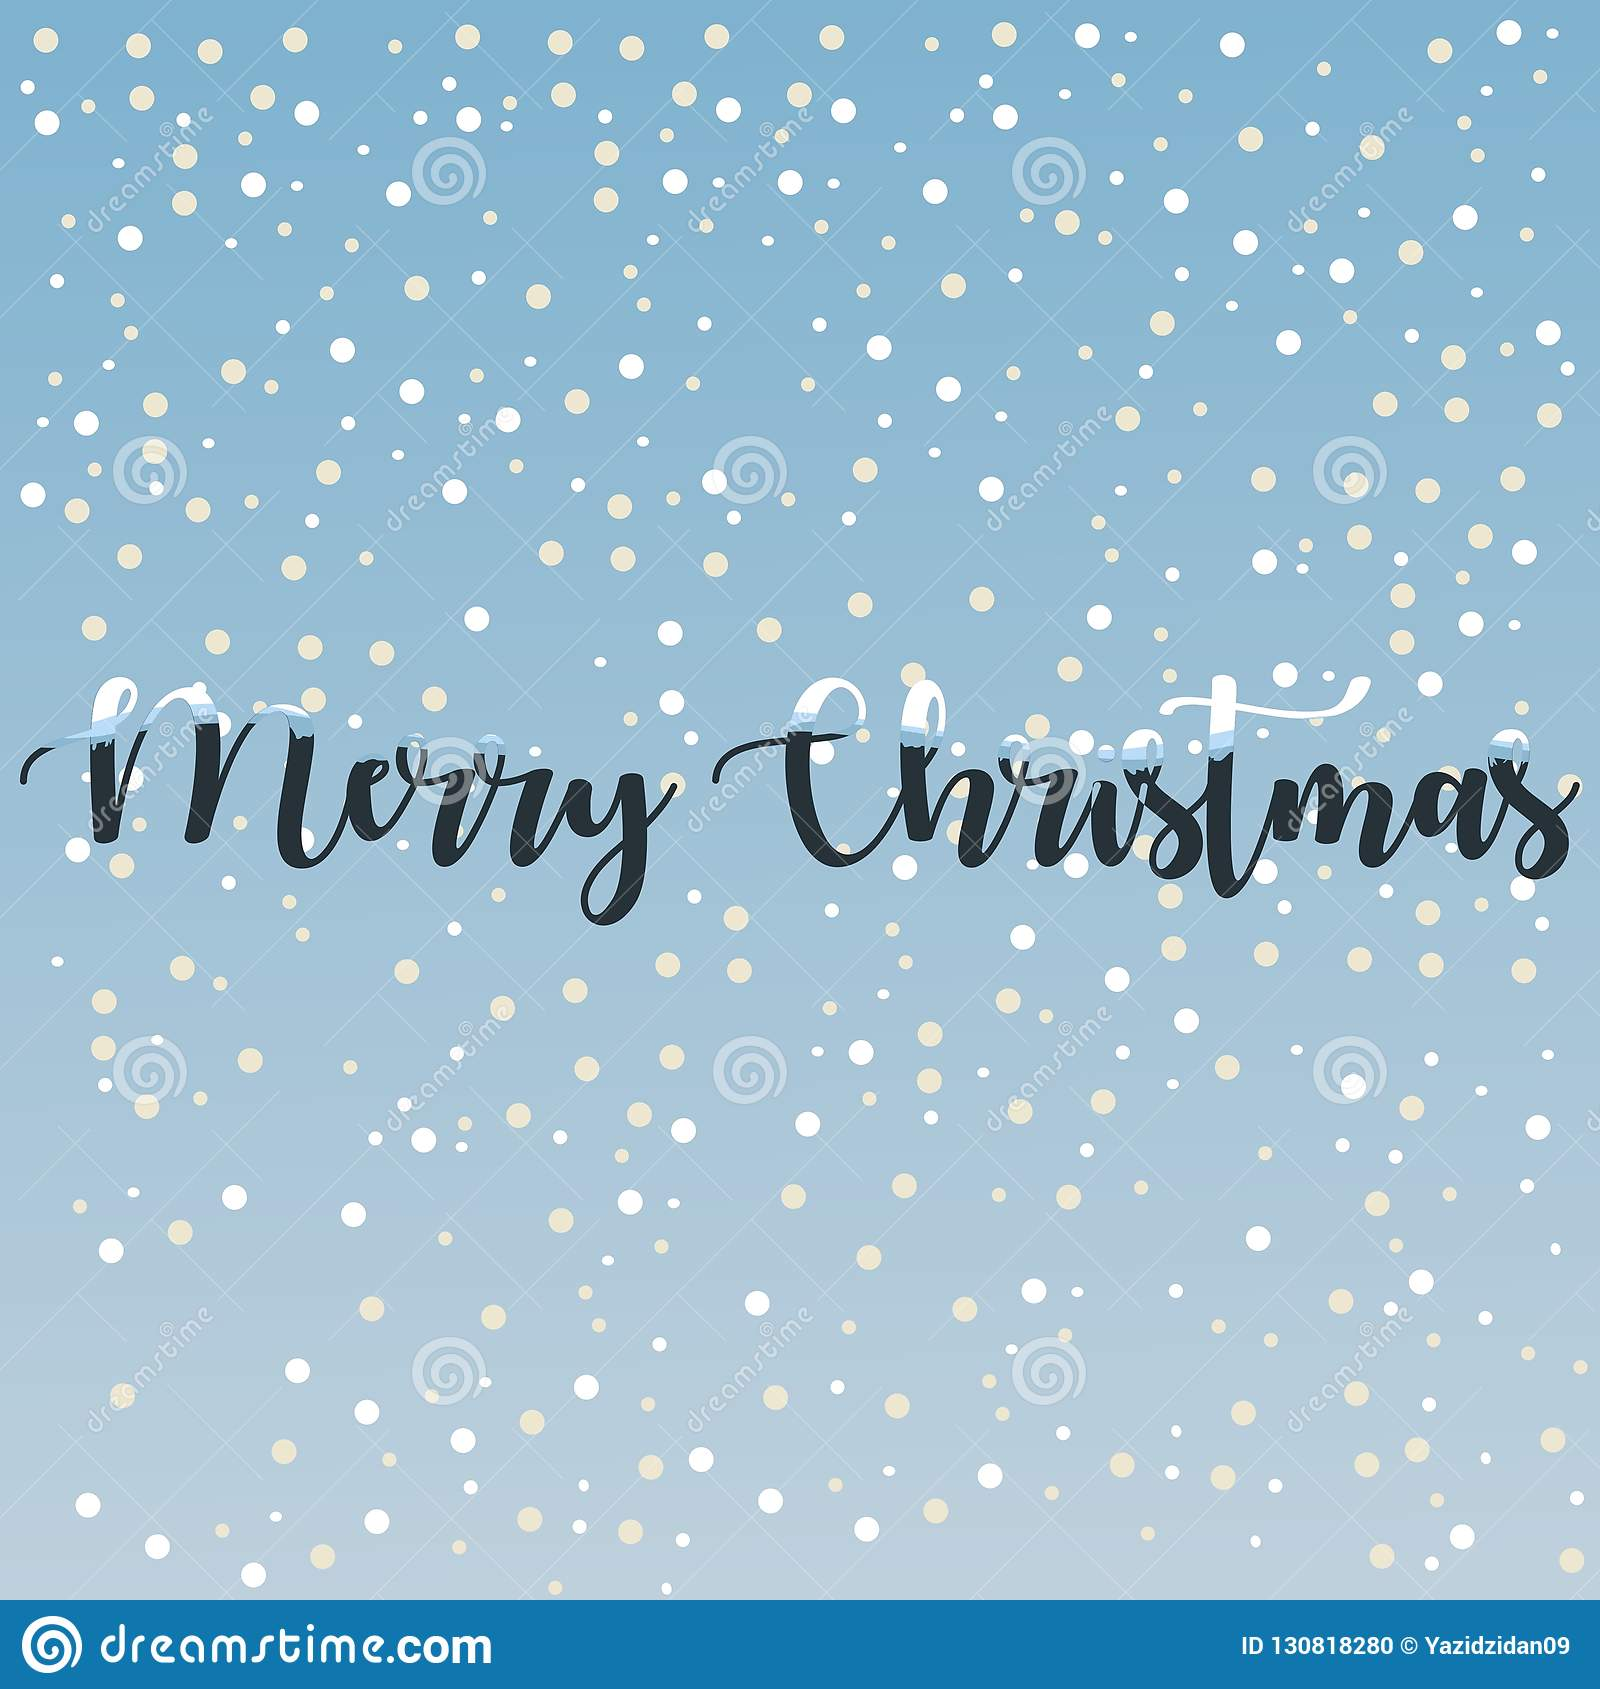 Cute Merry Christmas Greetings Card Vector Background 2019